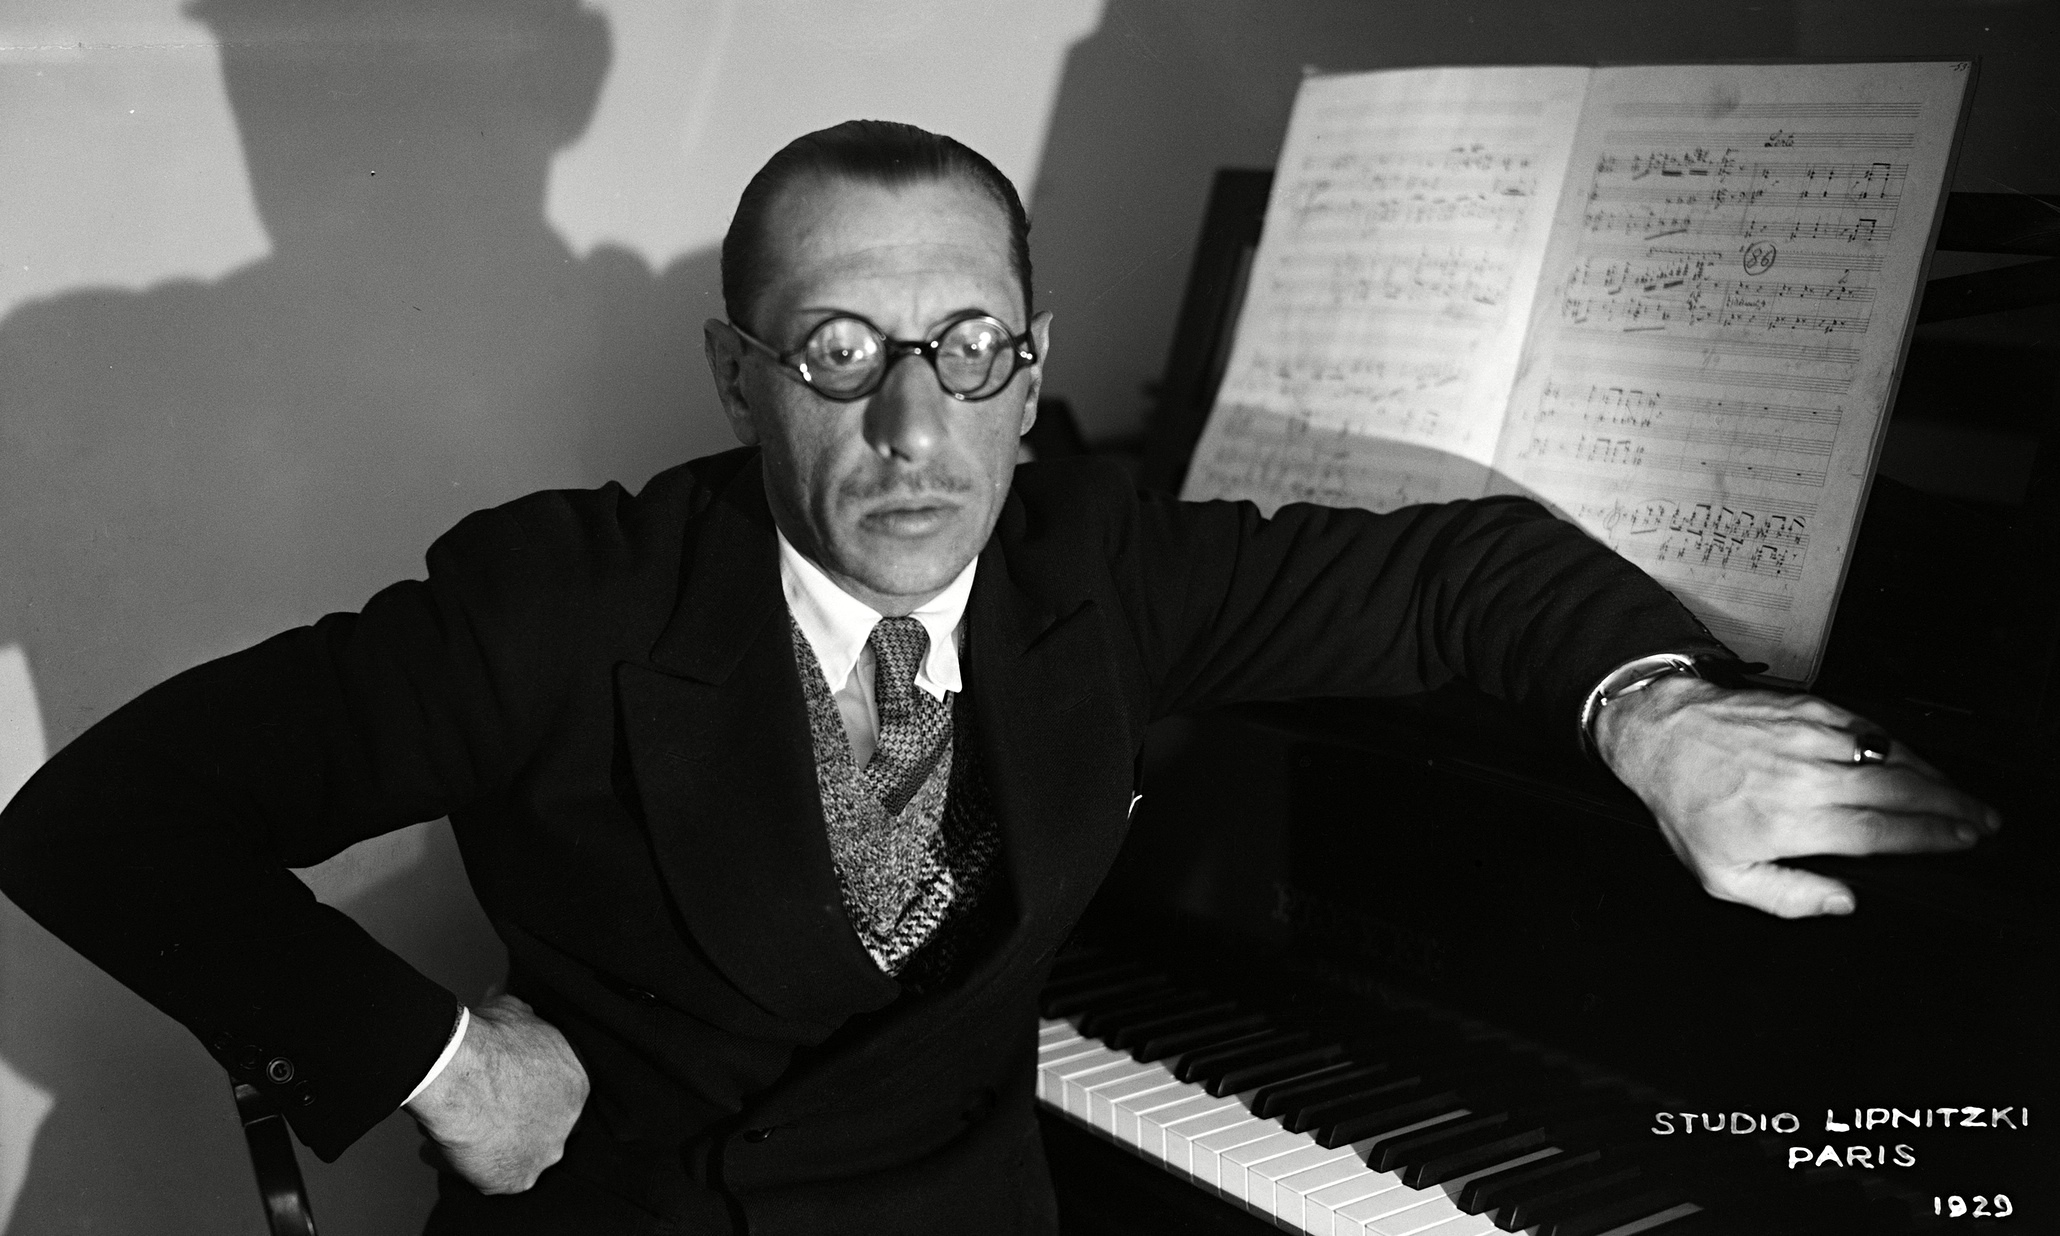 https://static-secure.guim.co.uk/sys-images/Observer/Pix/pictures/2015/9/5/1441445484326/Igor-Stravinsky-009.jpg